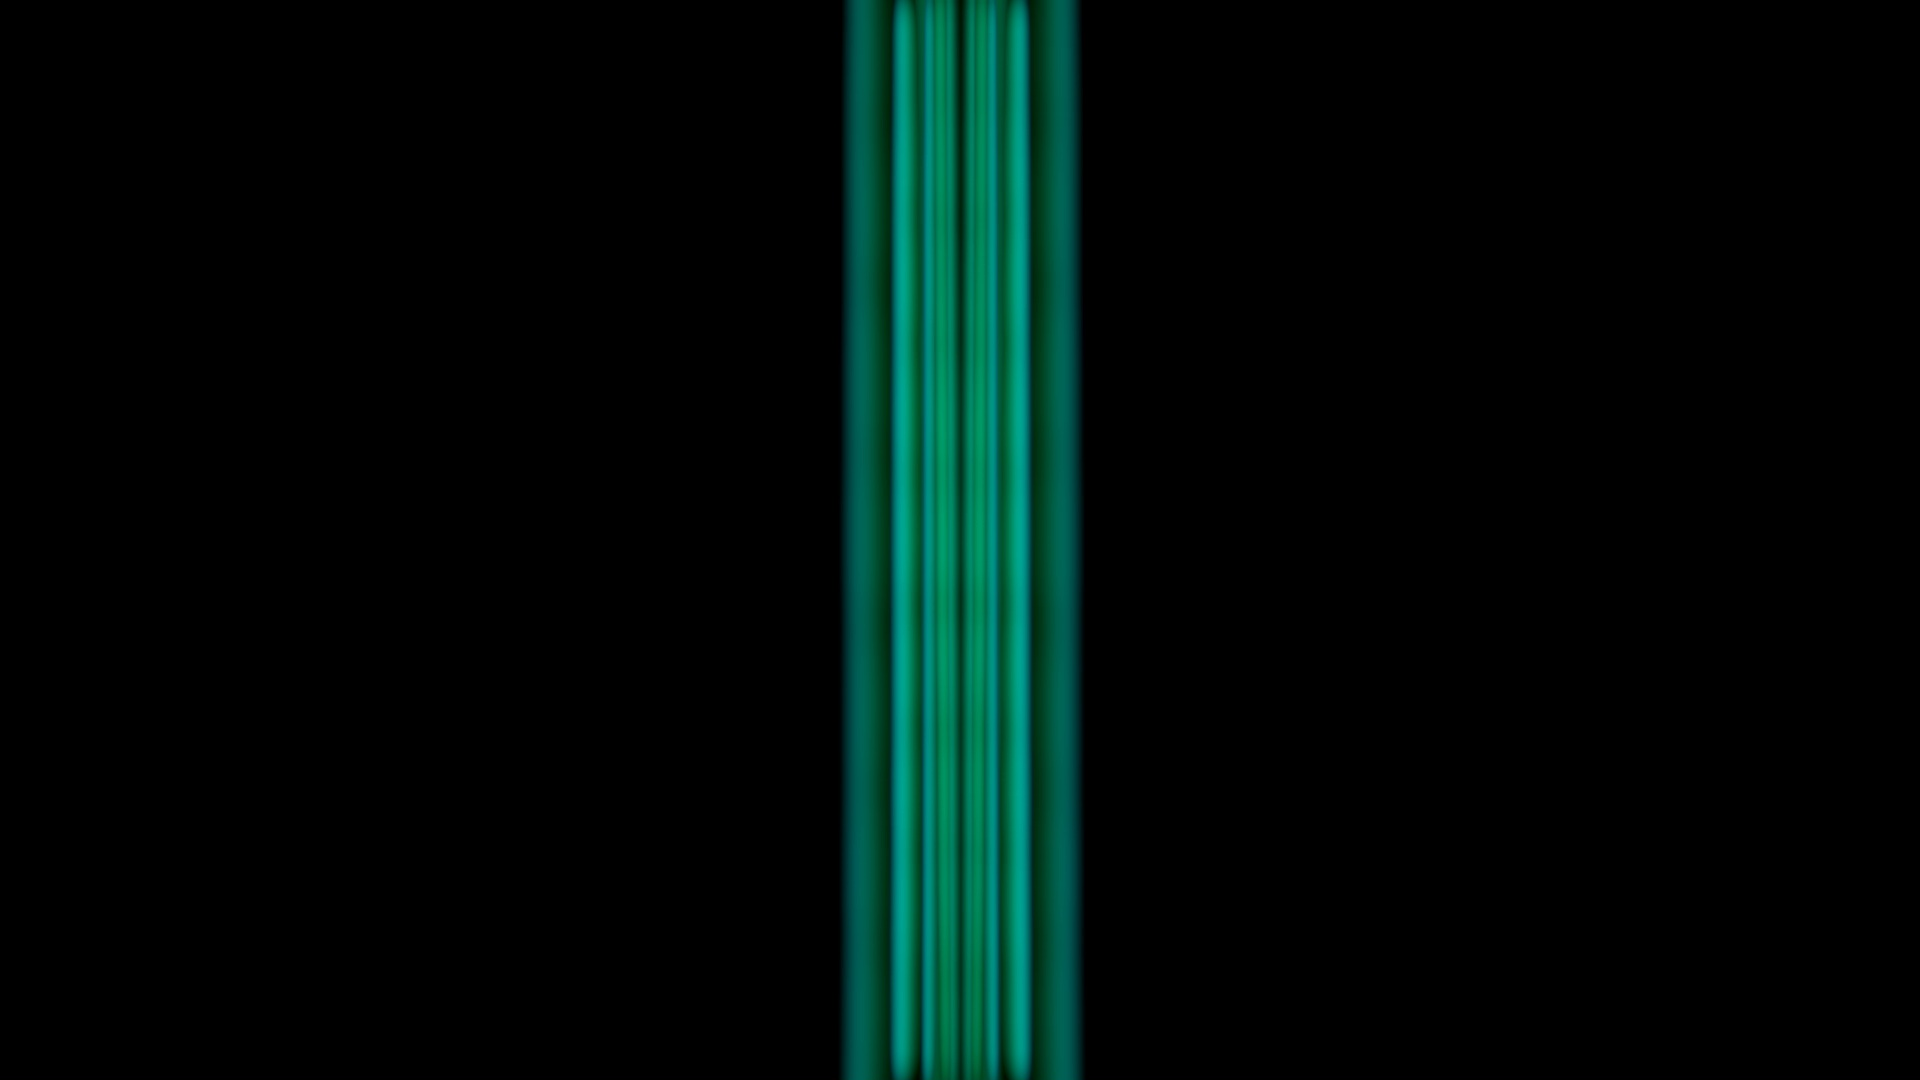 Sorrow - Green Lines Centered 1